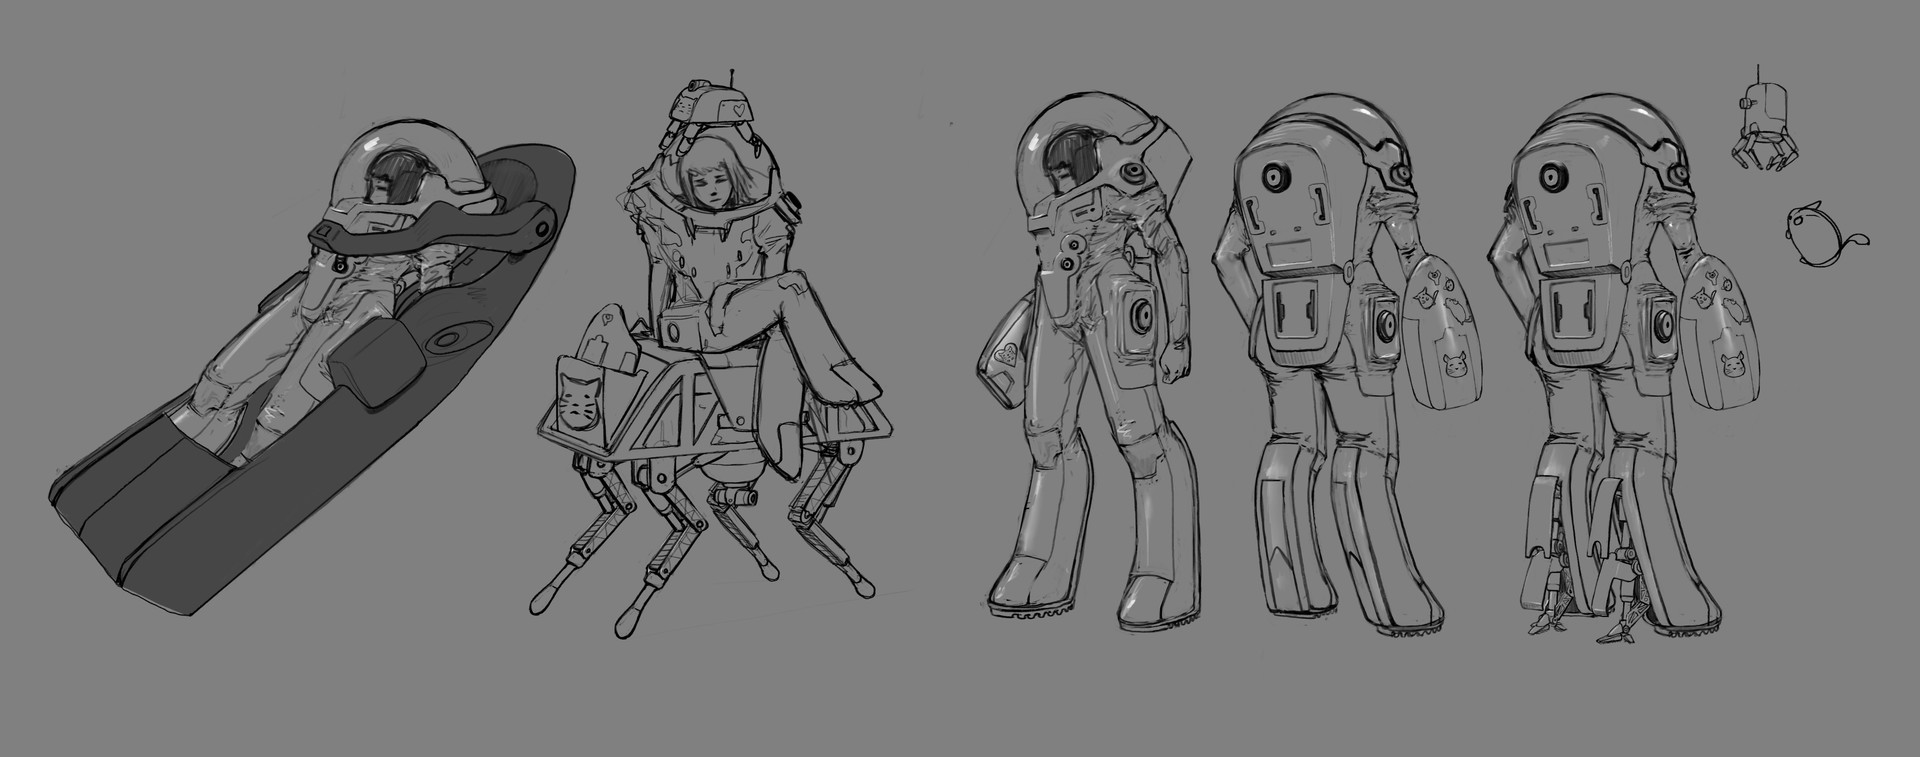 Left to right: Cryosleep bed, robot pets, suit 3/4s, leg stabilizers/locks, chinchilla